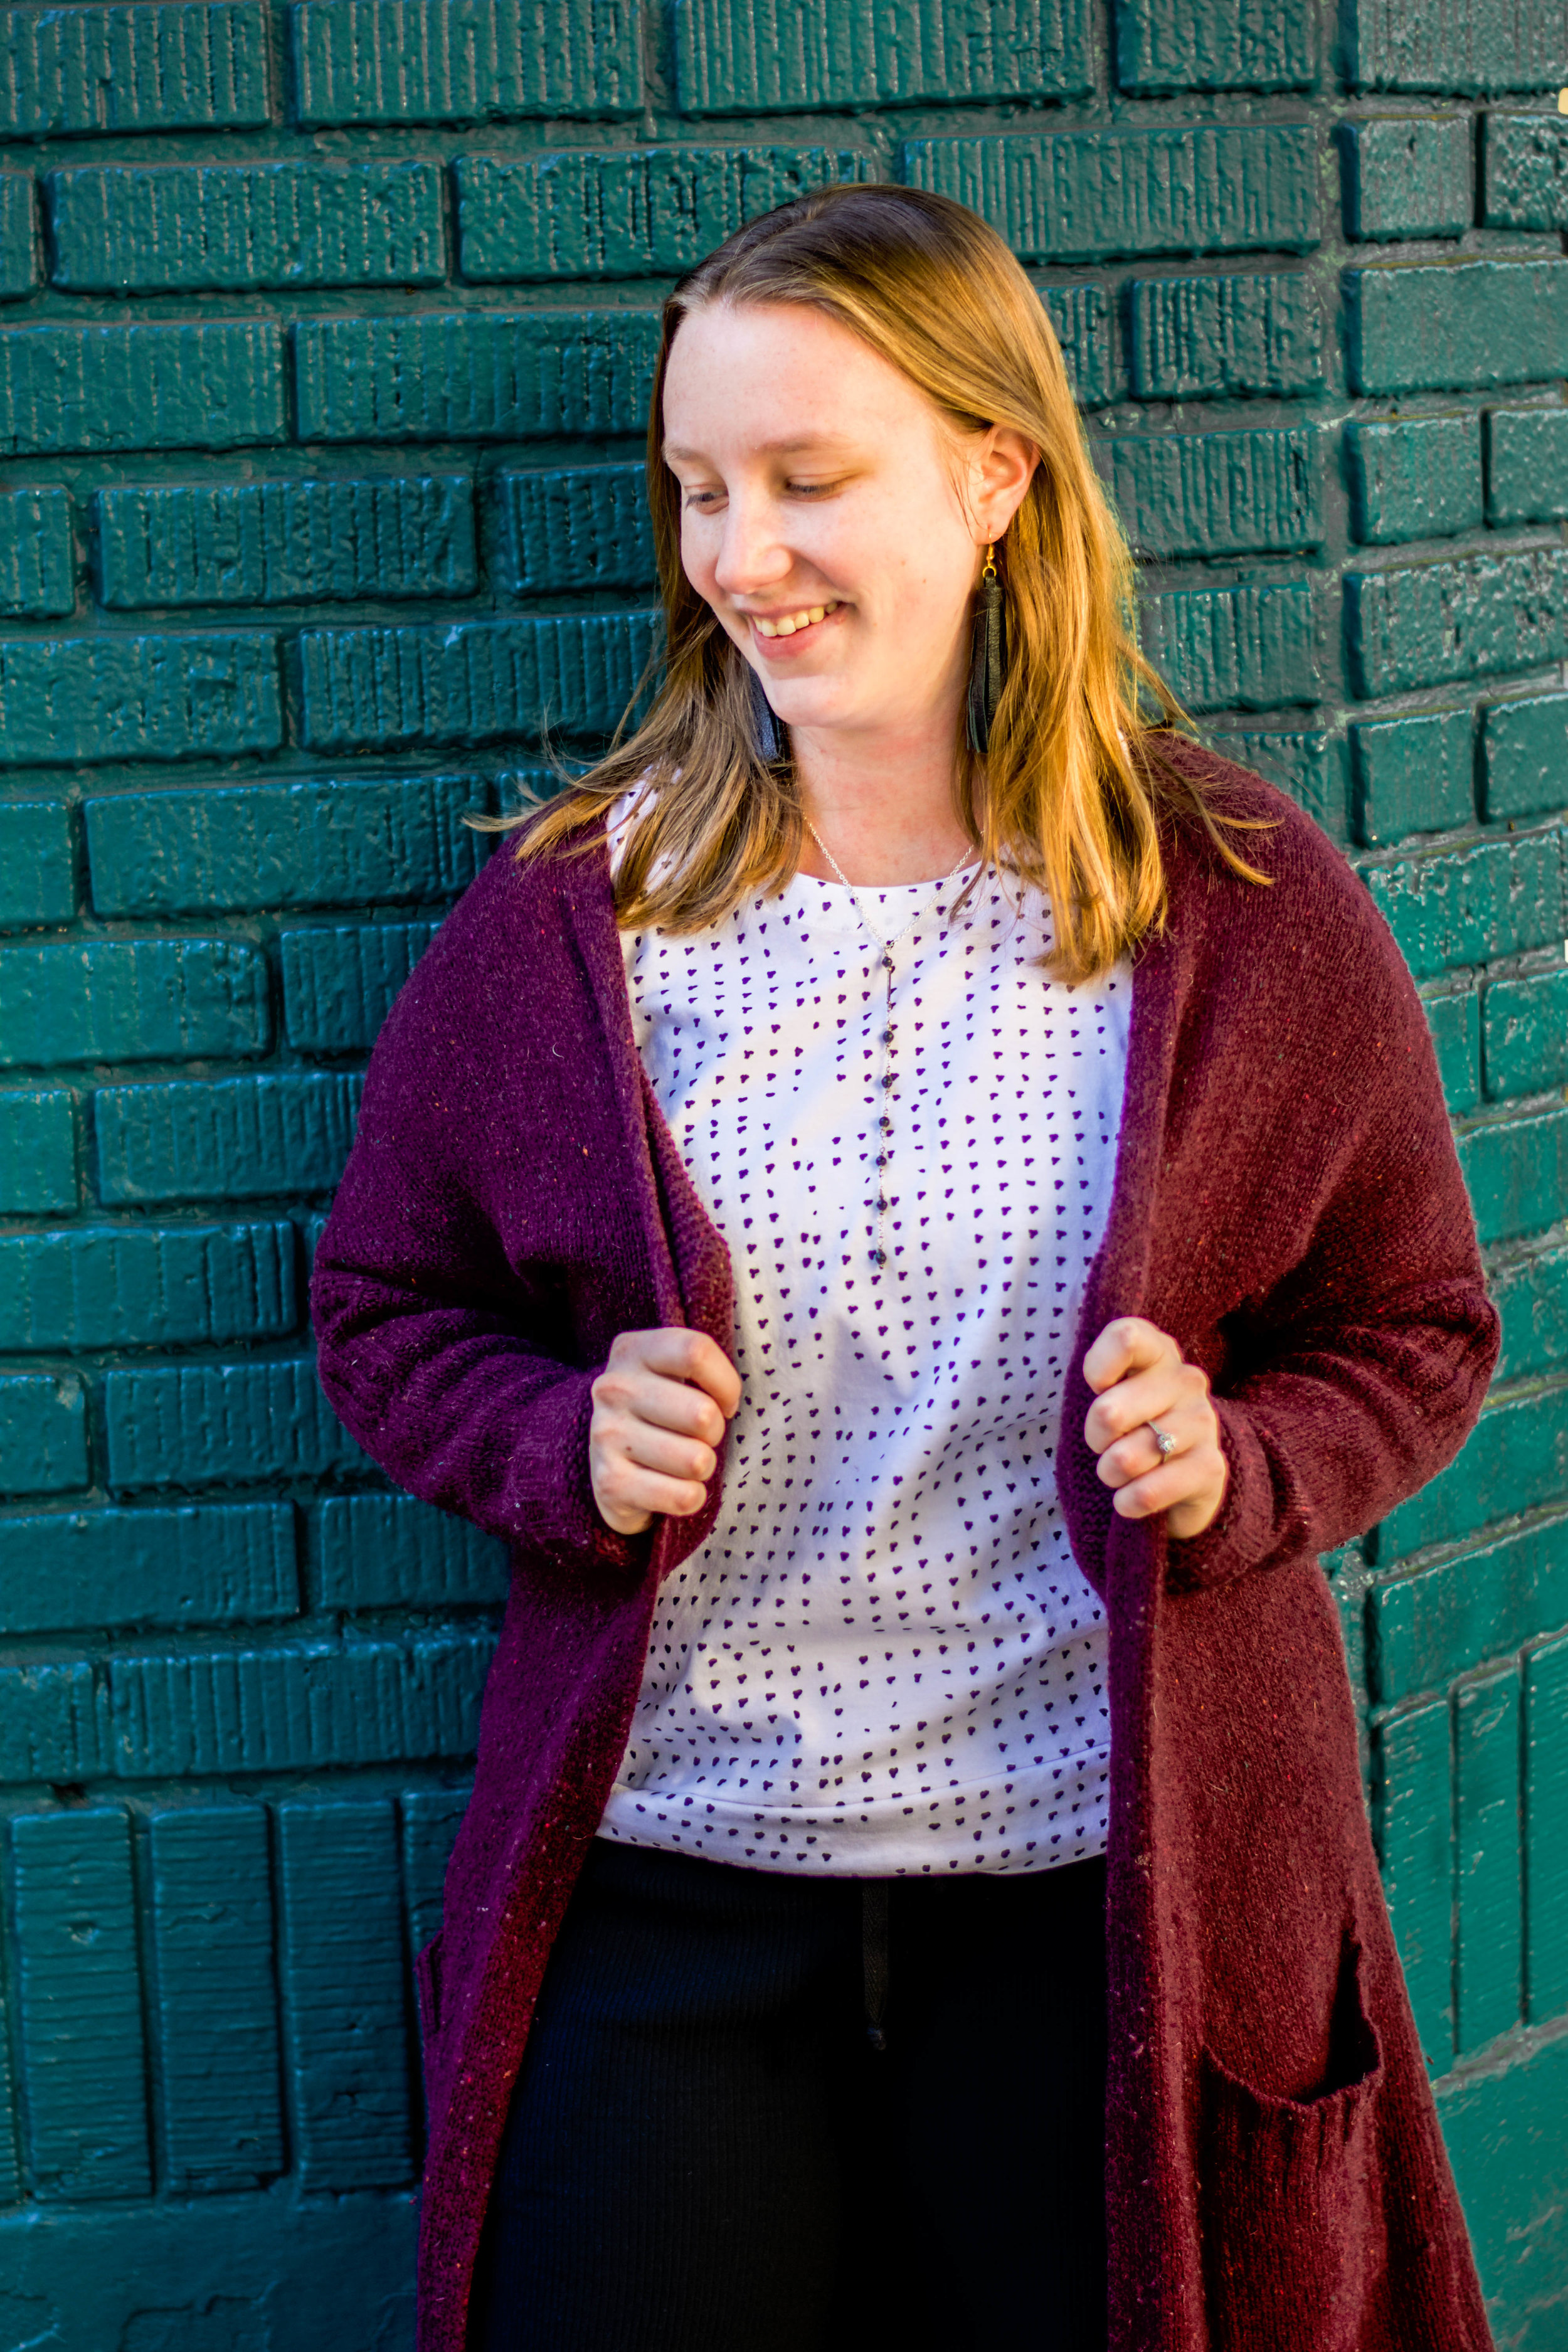 Ethical Clothing Brands for Women